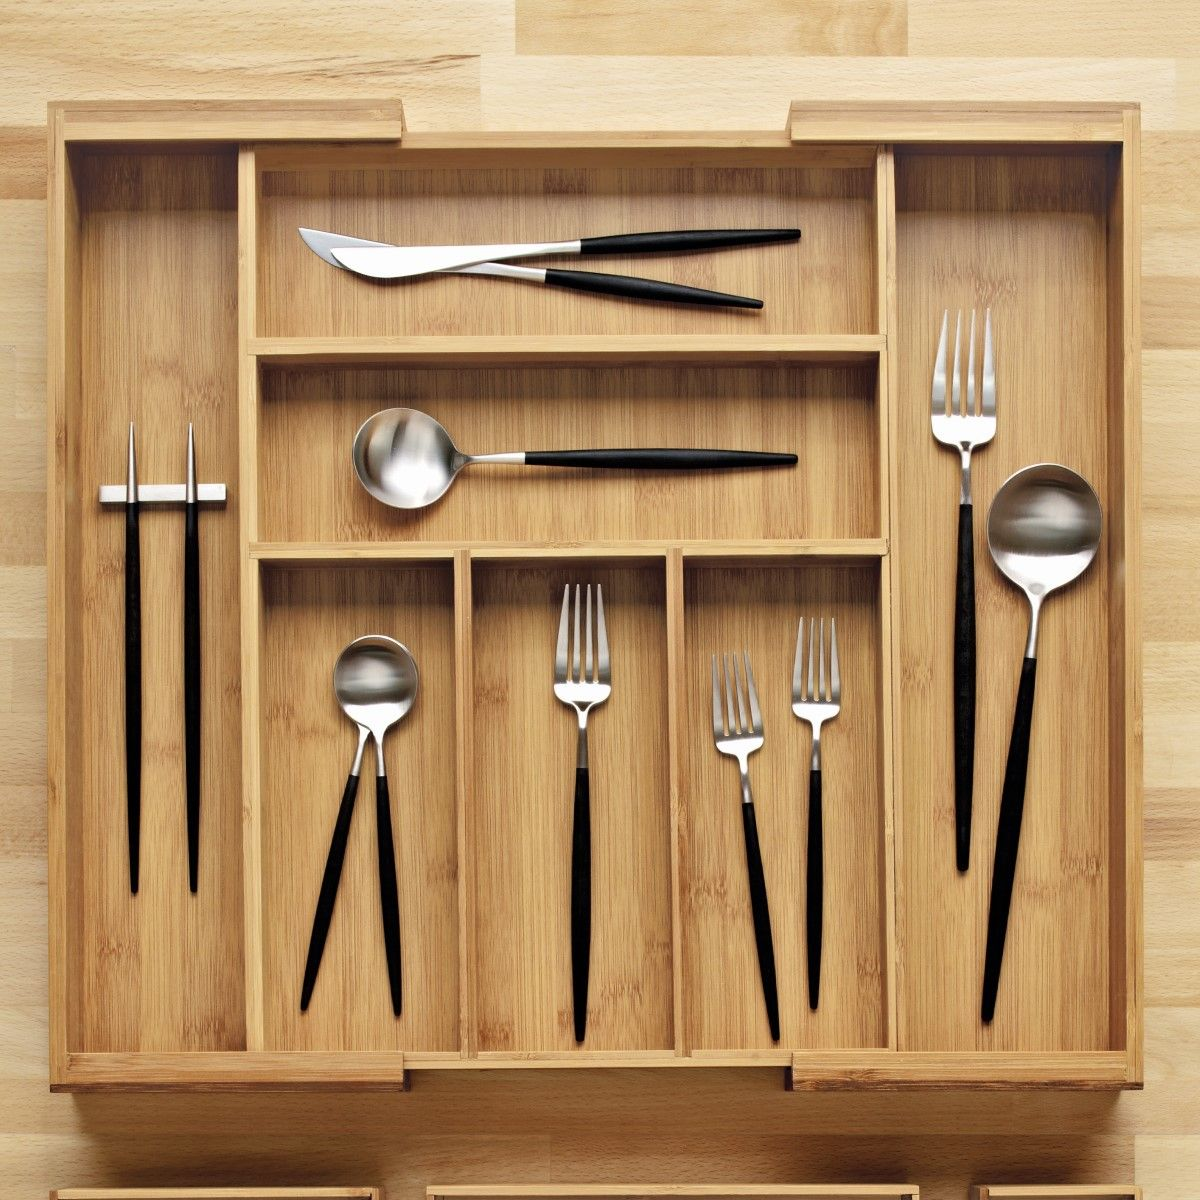 Expandable Bamboo Silverware Tray In 2020 Cutlery Tray Bamboo Silverware Silverware Tray